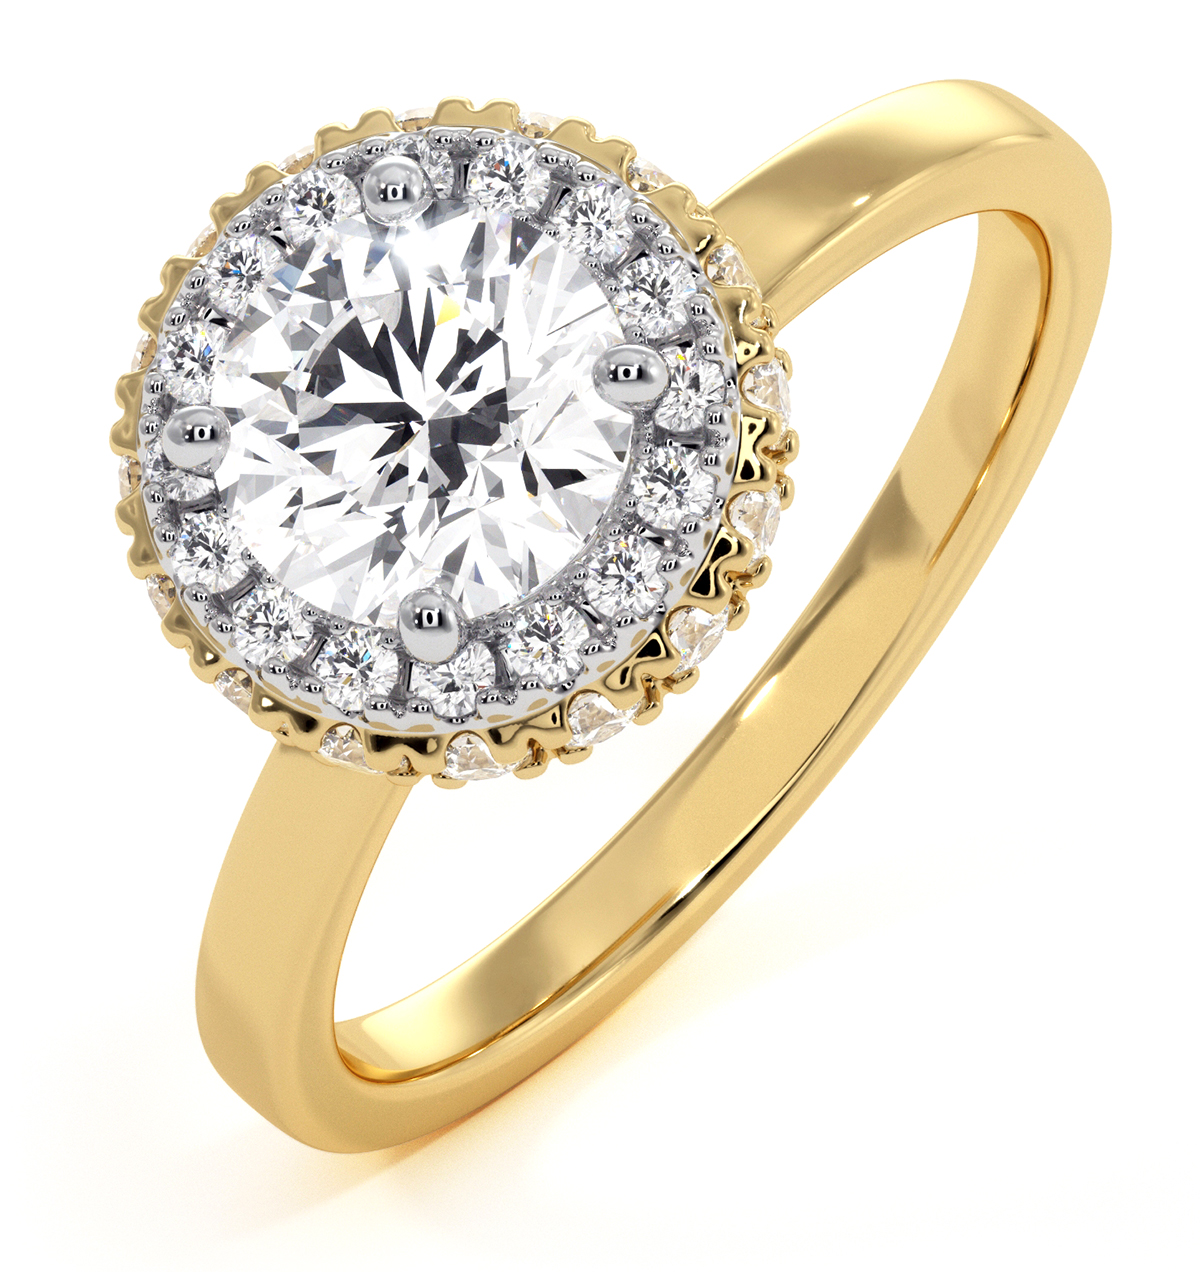 Eleanor GIA Diamond Halo Engagement Ring in 18K Gold 1.09ct G/VS1 - image 1